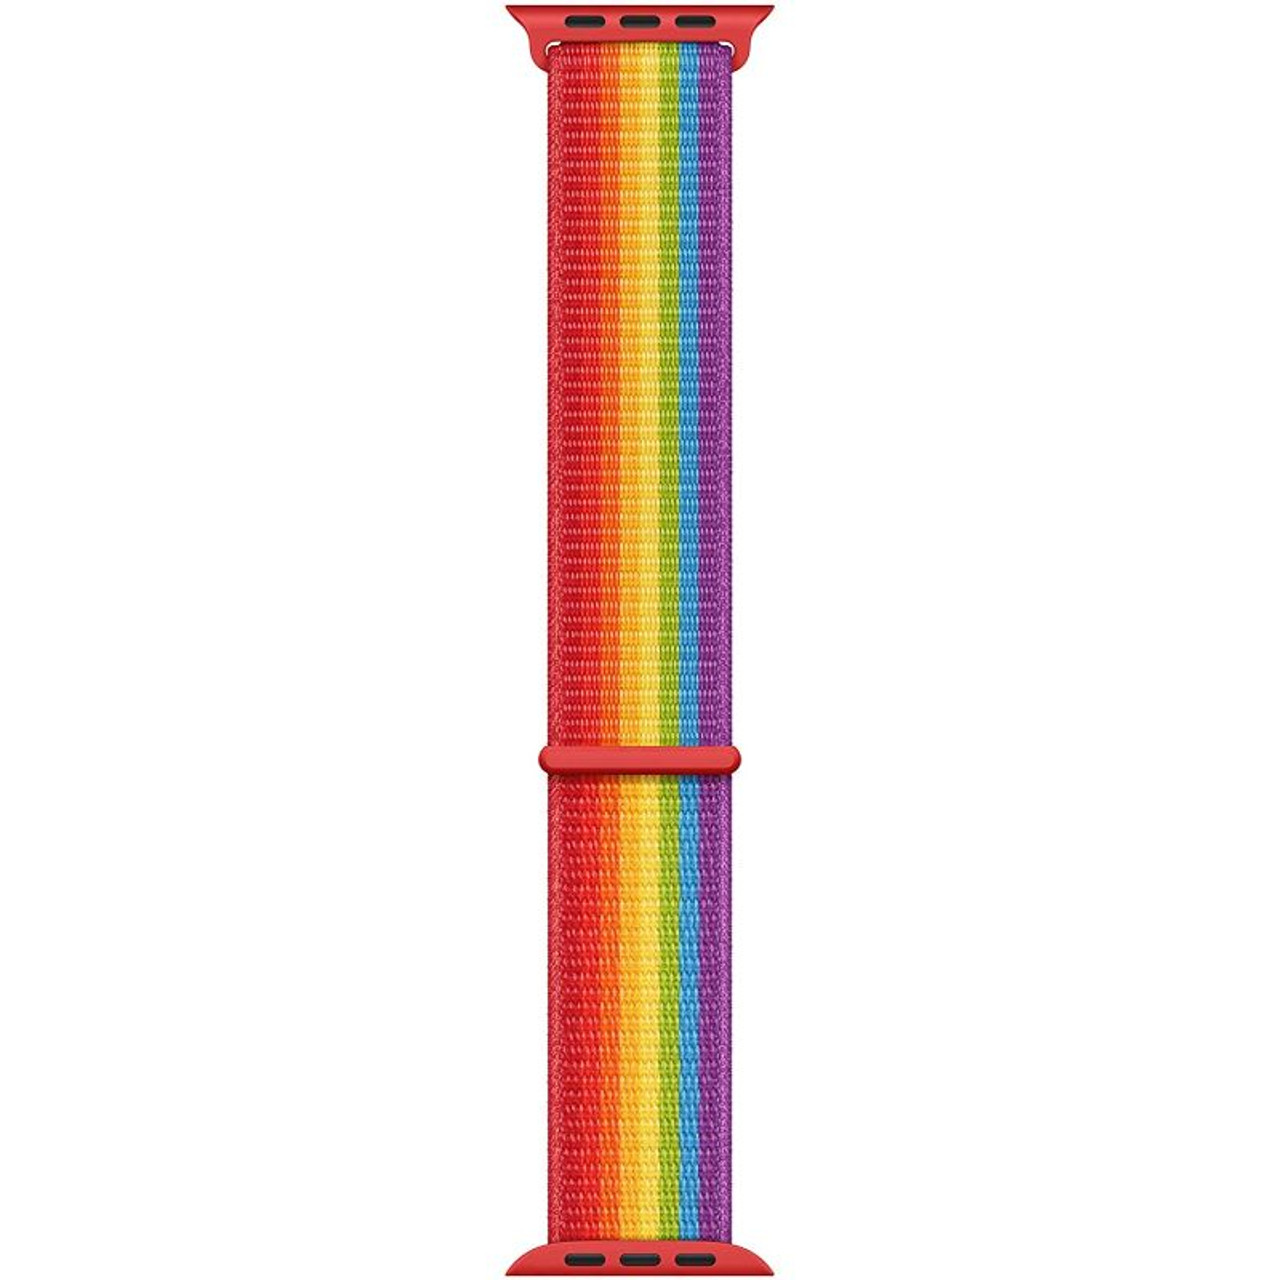 Original Apple Sport Loops and Woven Bands for Apple Watch 40mm or 44mm